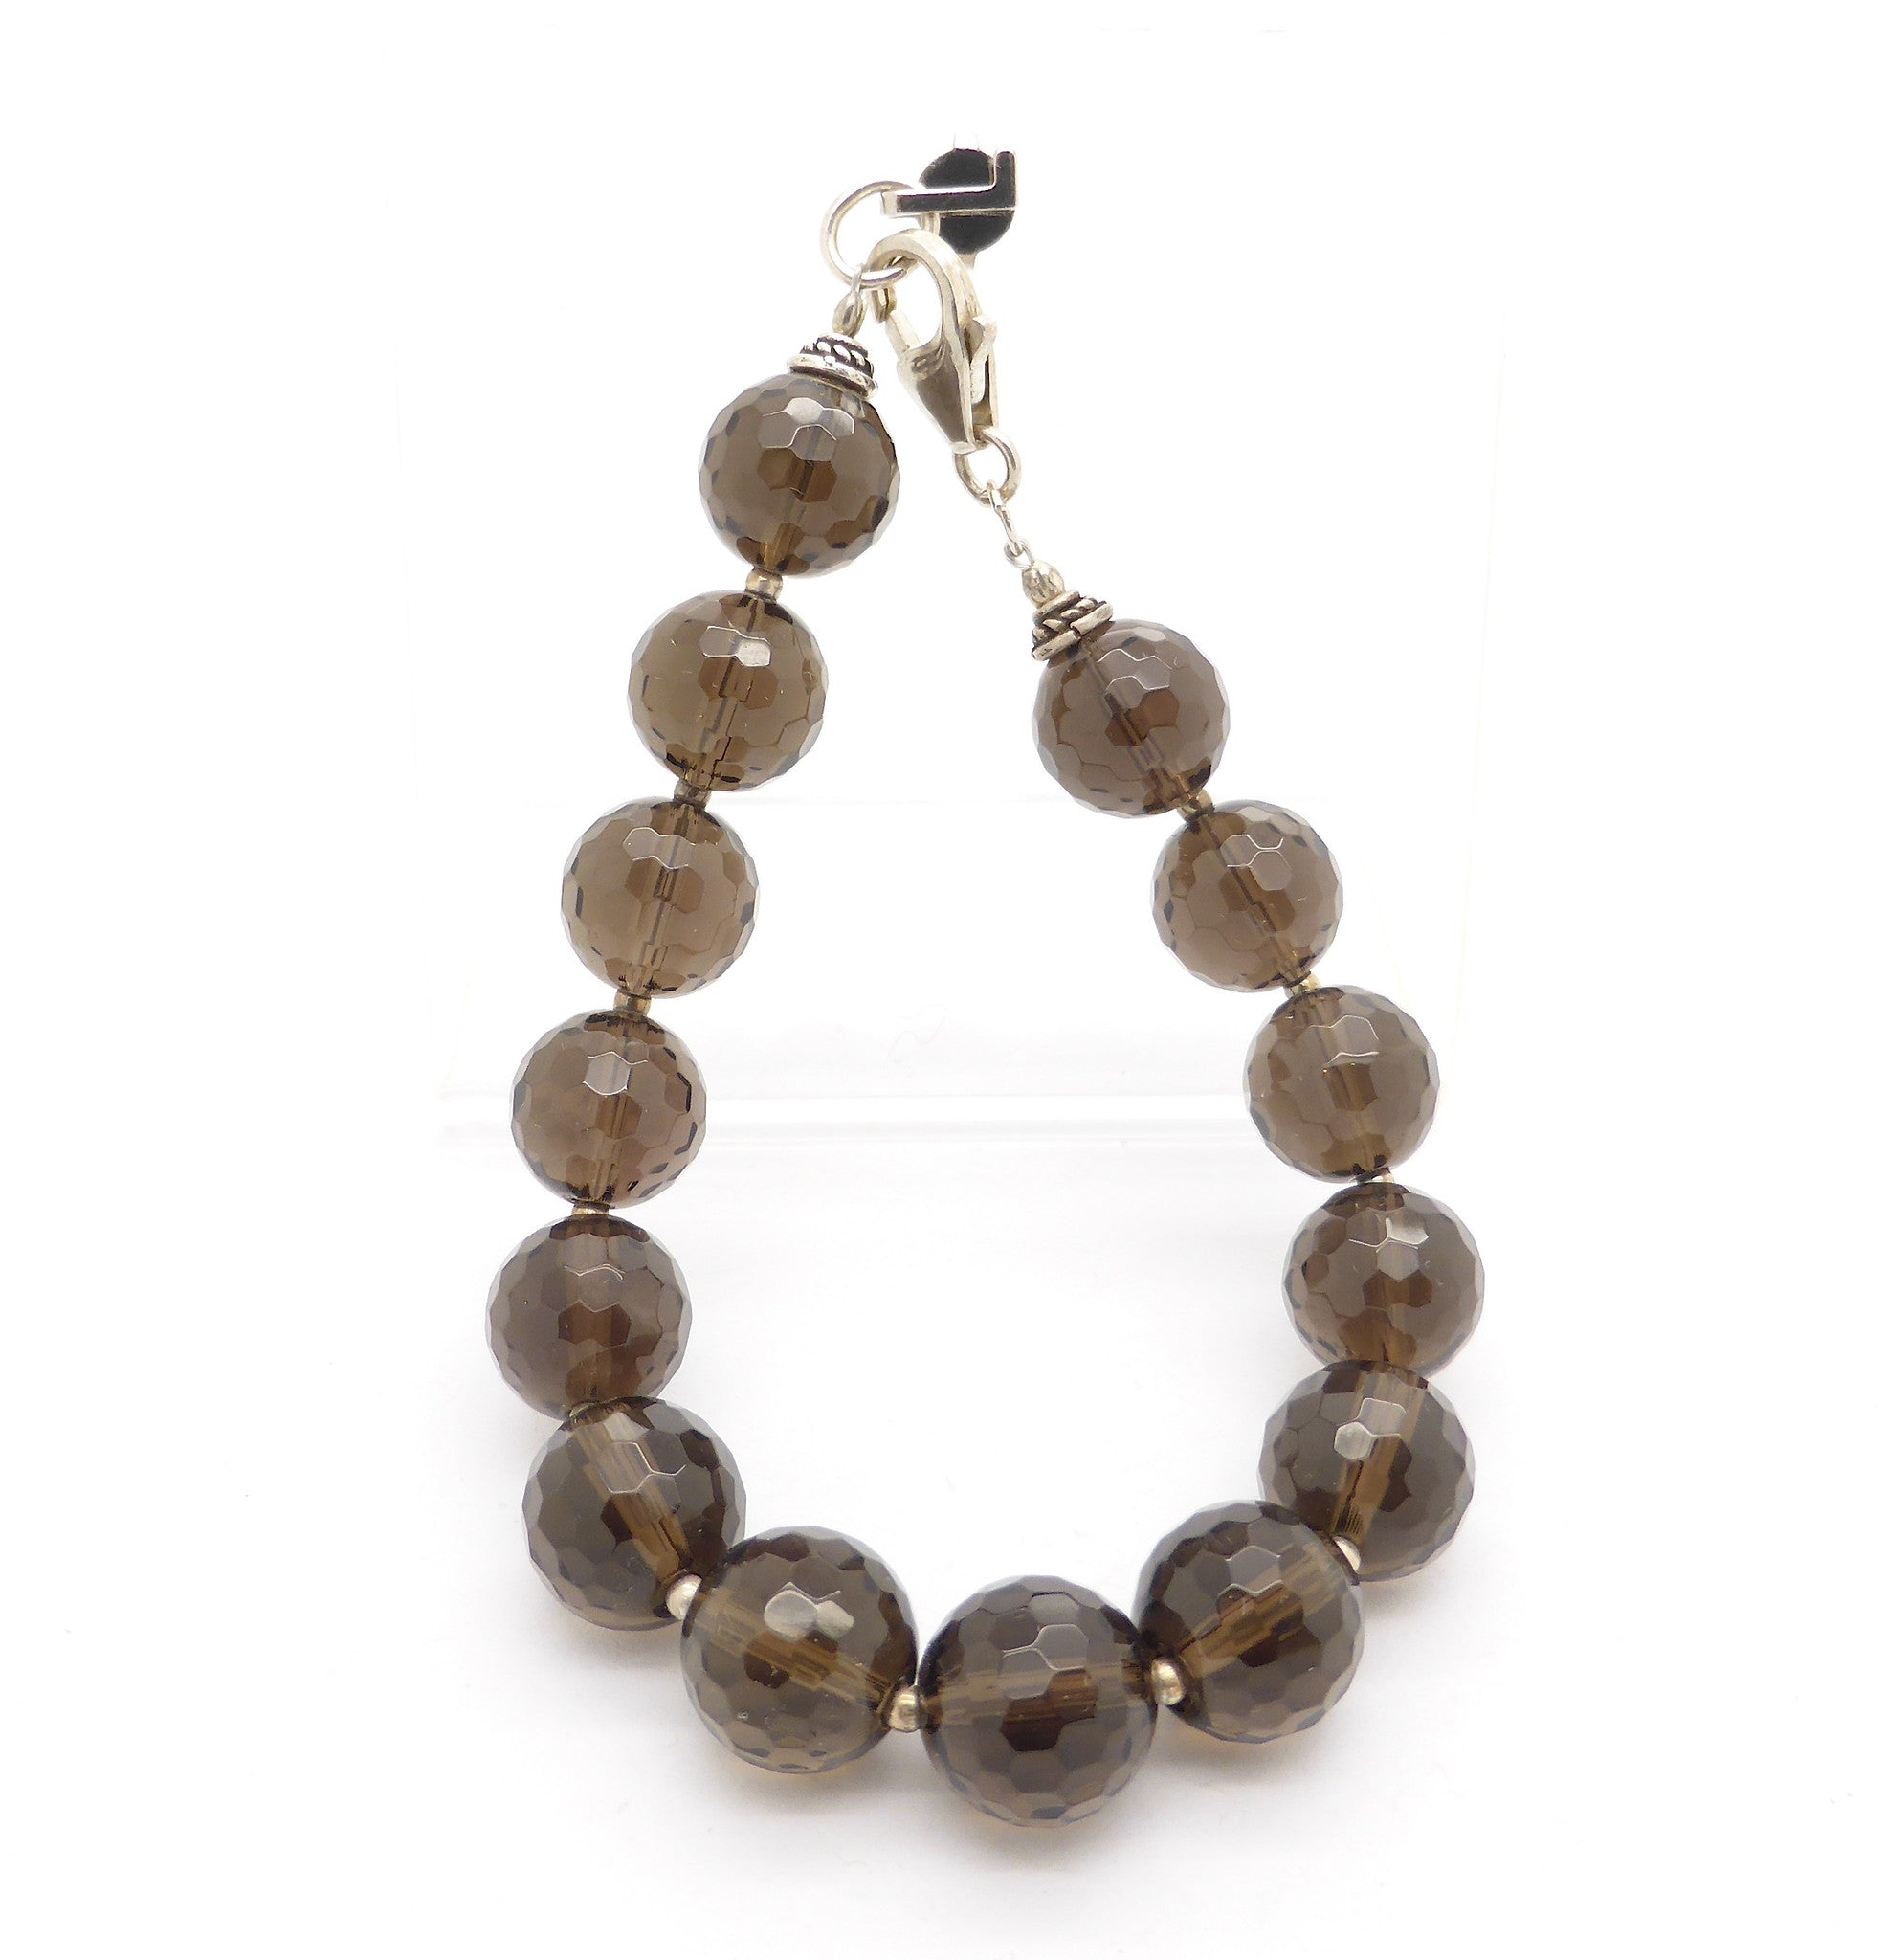 Faceted Smoky Quartz Beads Bracelet | 925 Sterling Silver and Tiger Tail | Nice mellow colour | Fair Trade and well made | Smoky is down to Earth in a conscious way empowering you to deal with physical issues internal or external | Genuine Gems from Crystal Heart Australia since 1986